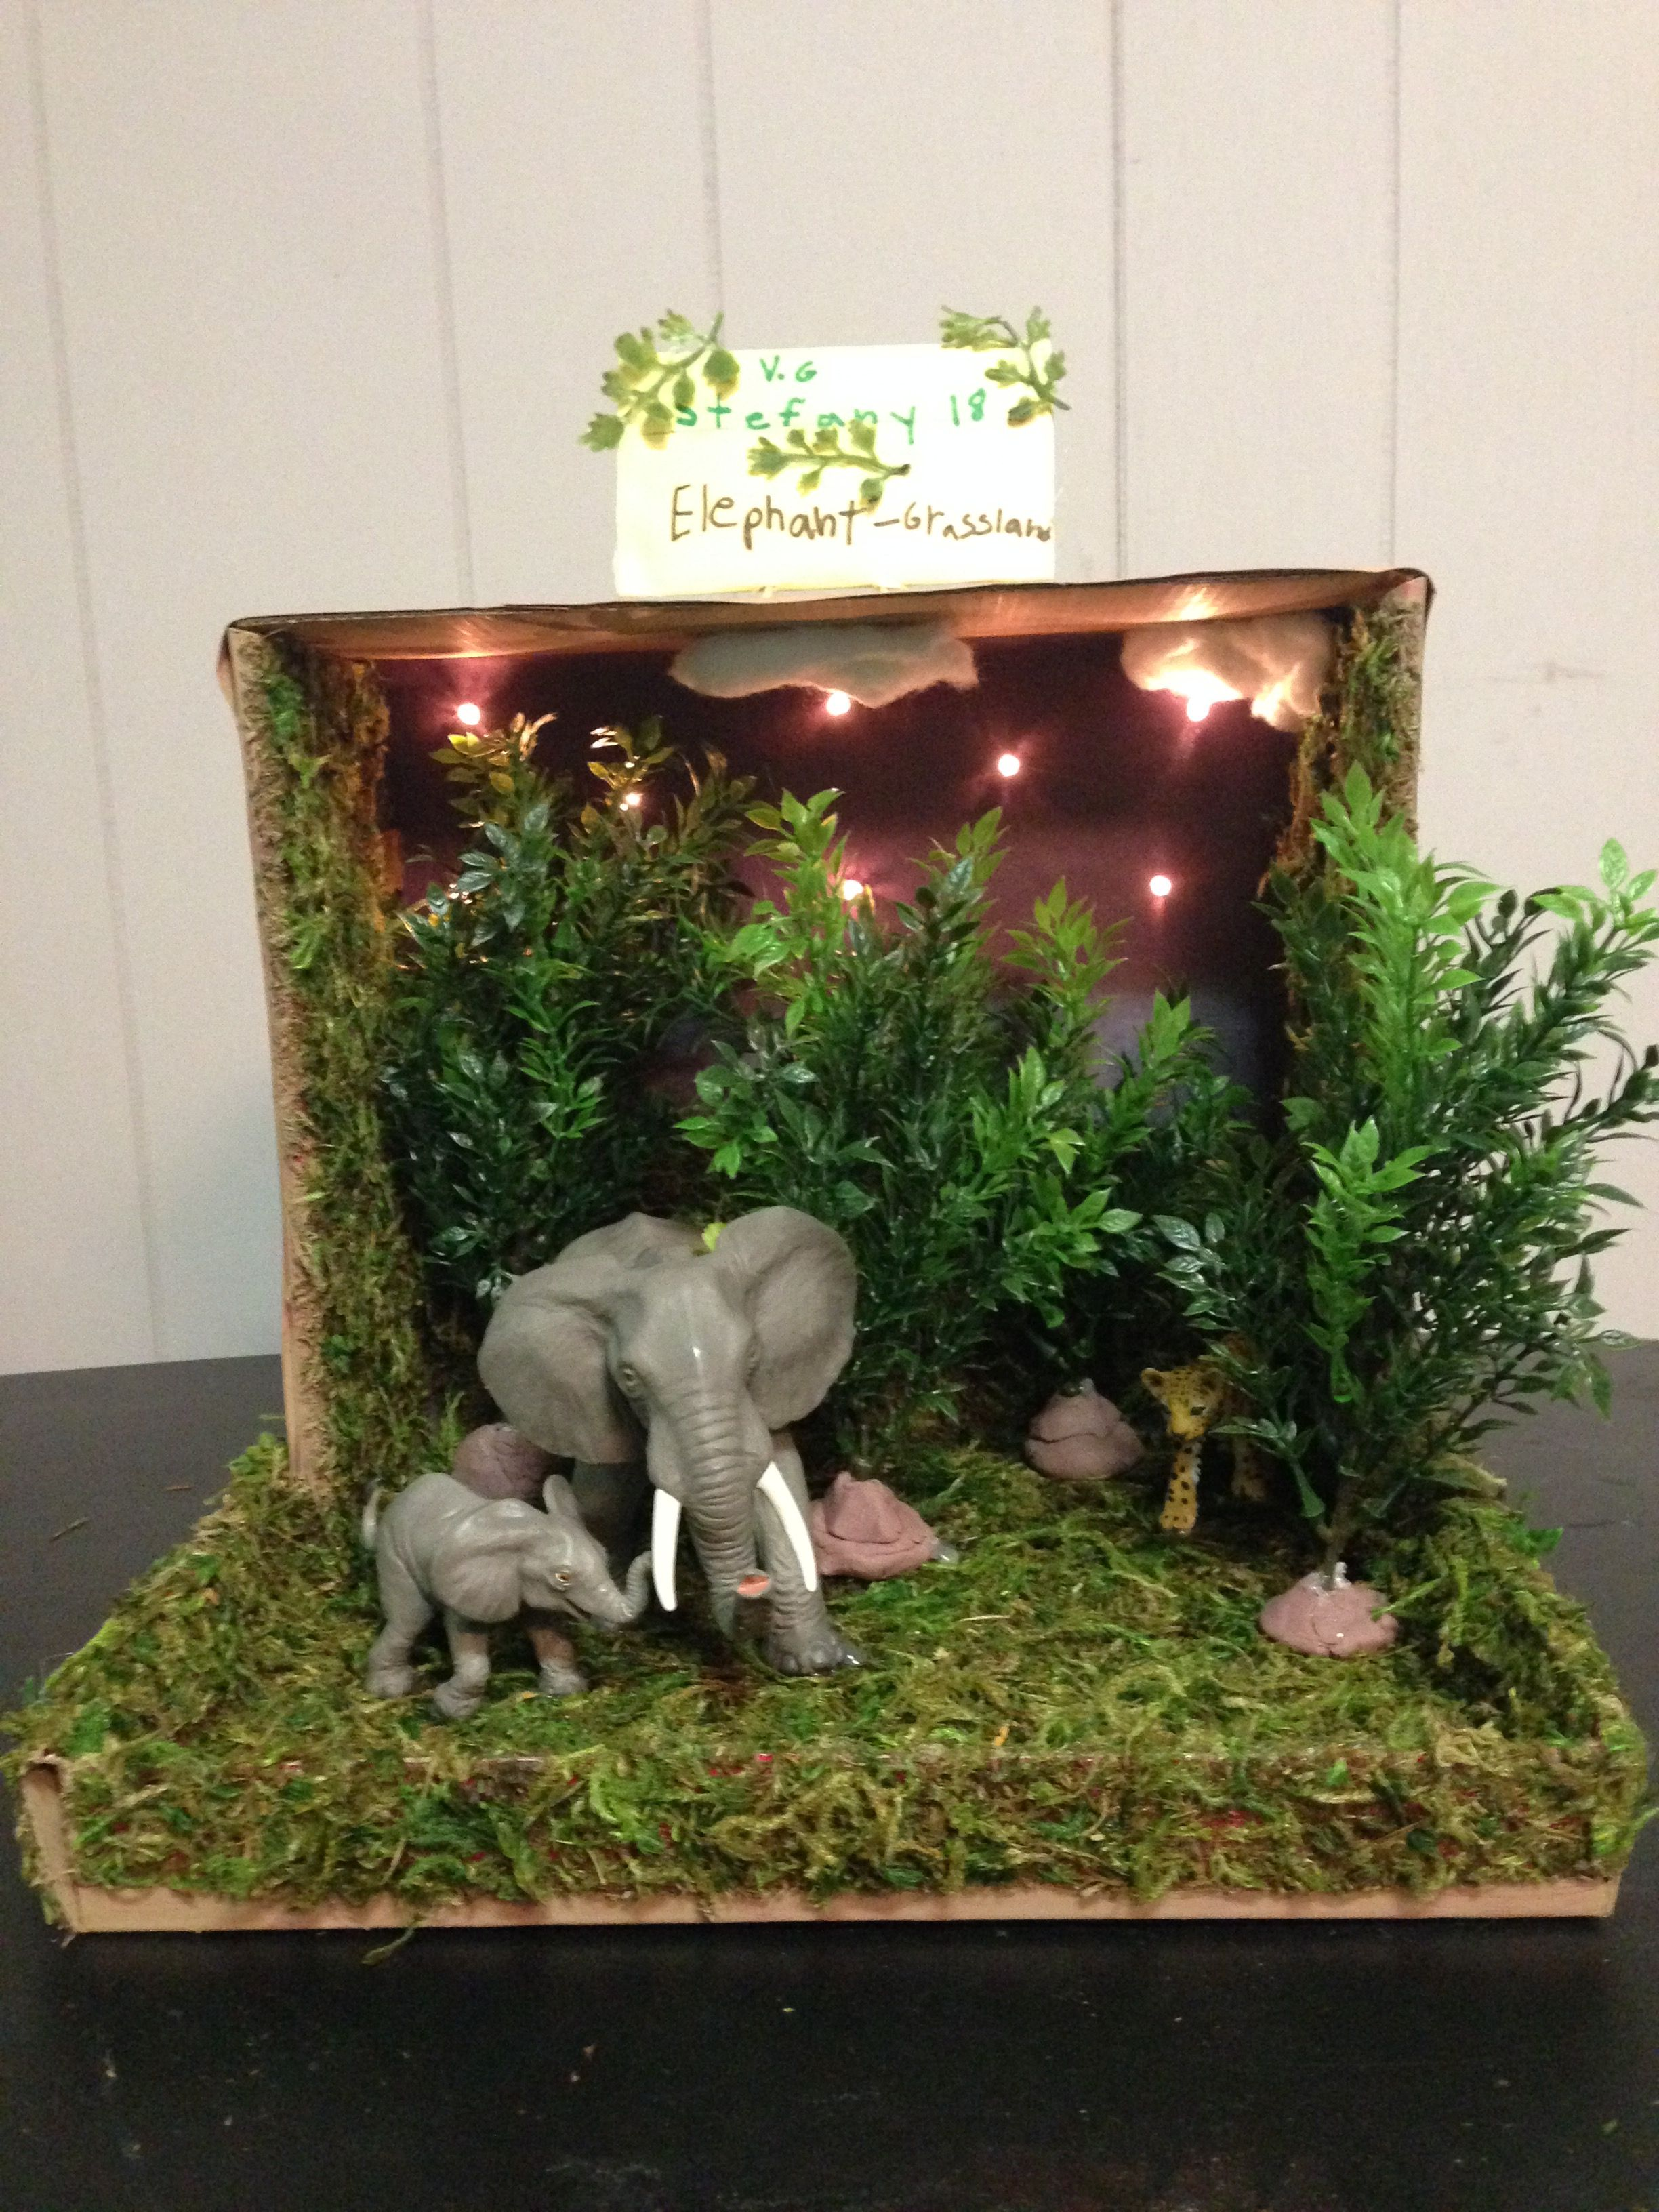 Elephant grassland habitat shoe box project our projects for Habitat container